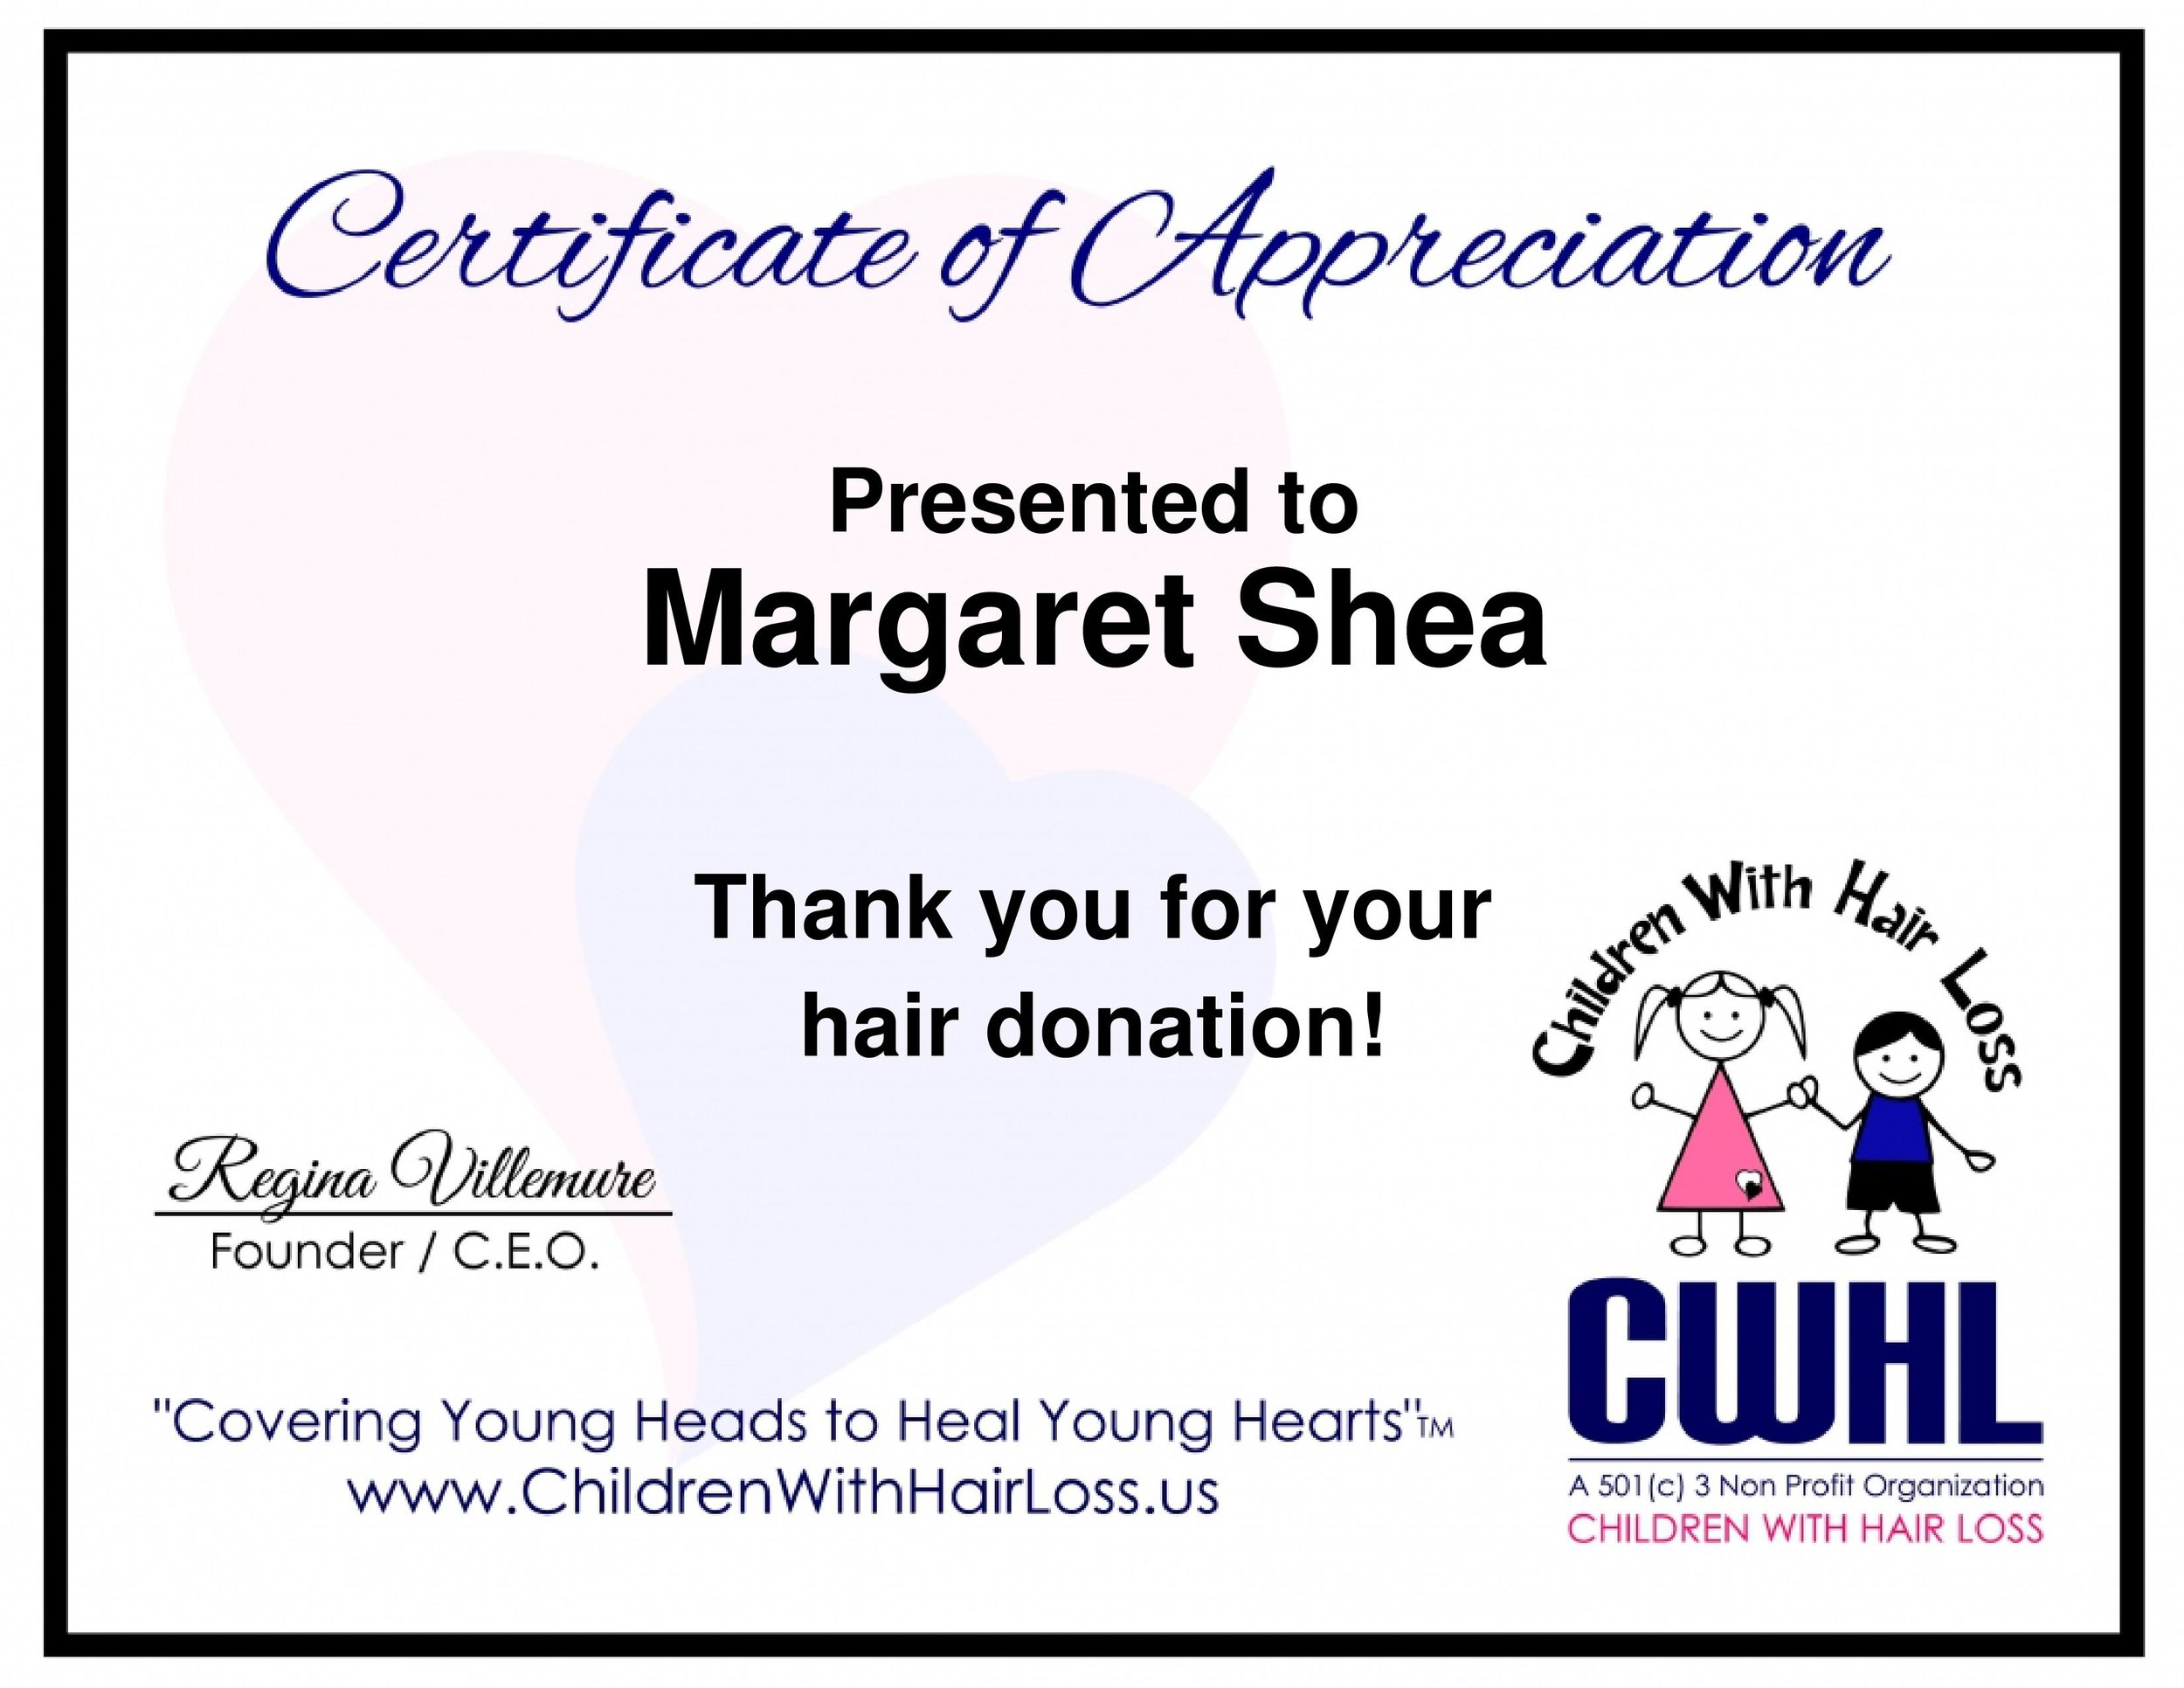 cwhl_certificate-page-001.jpg